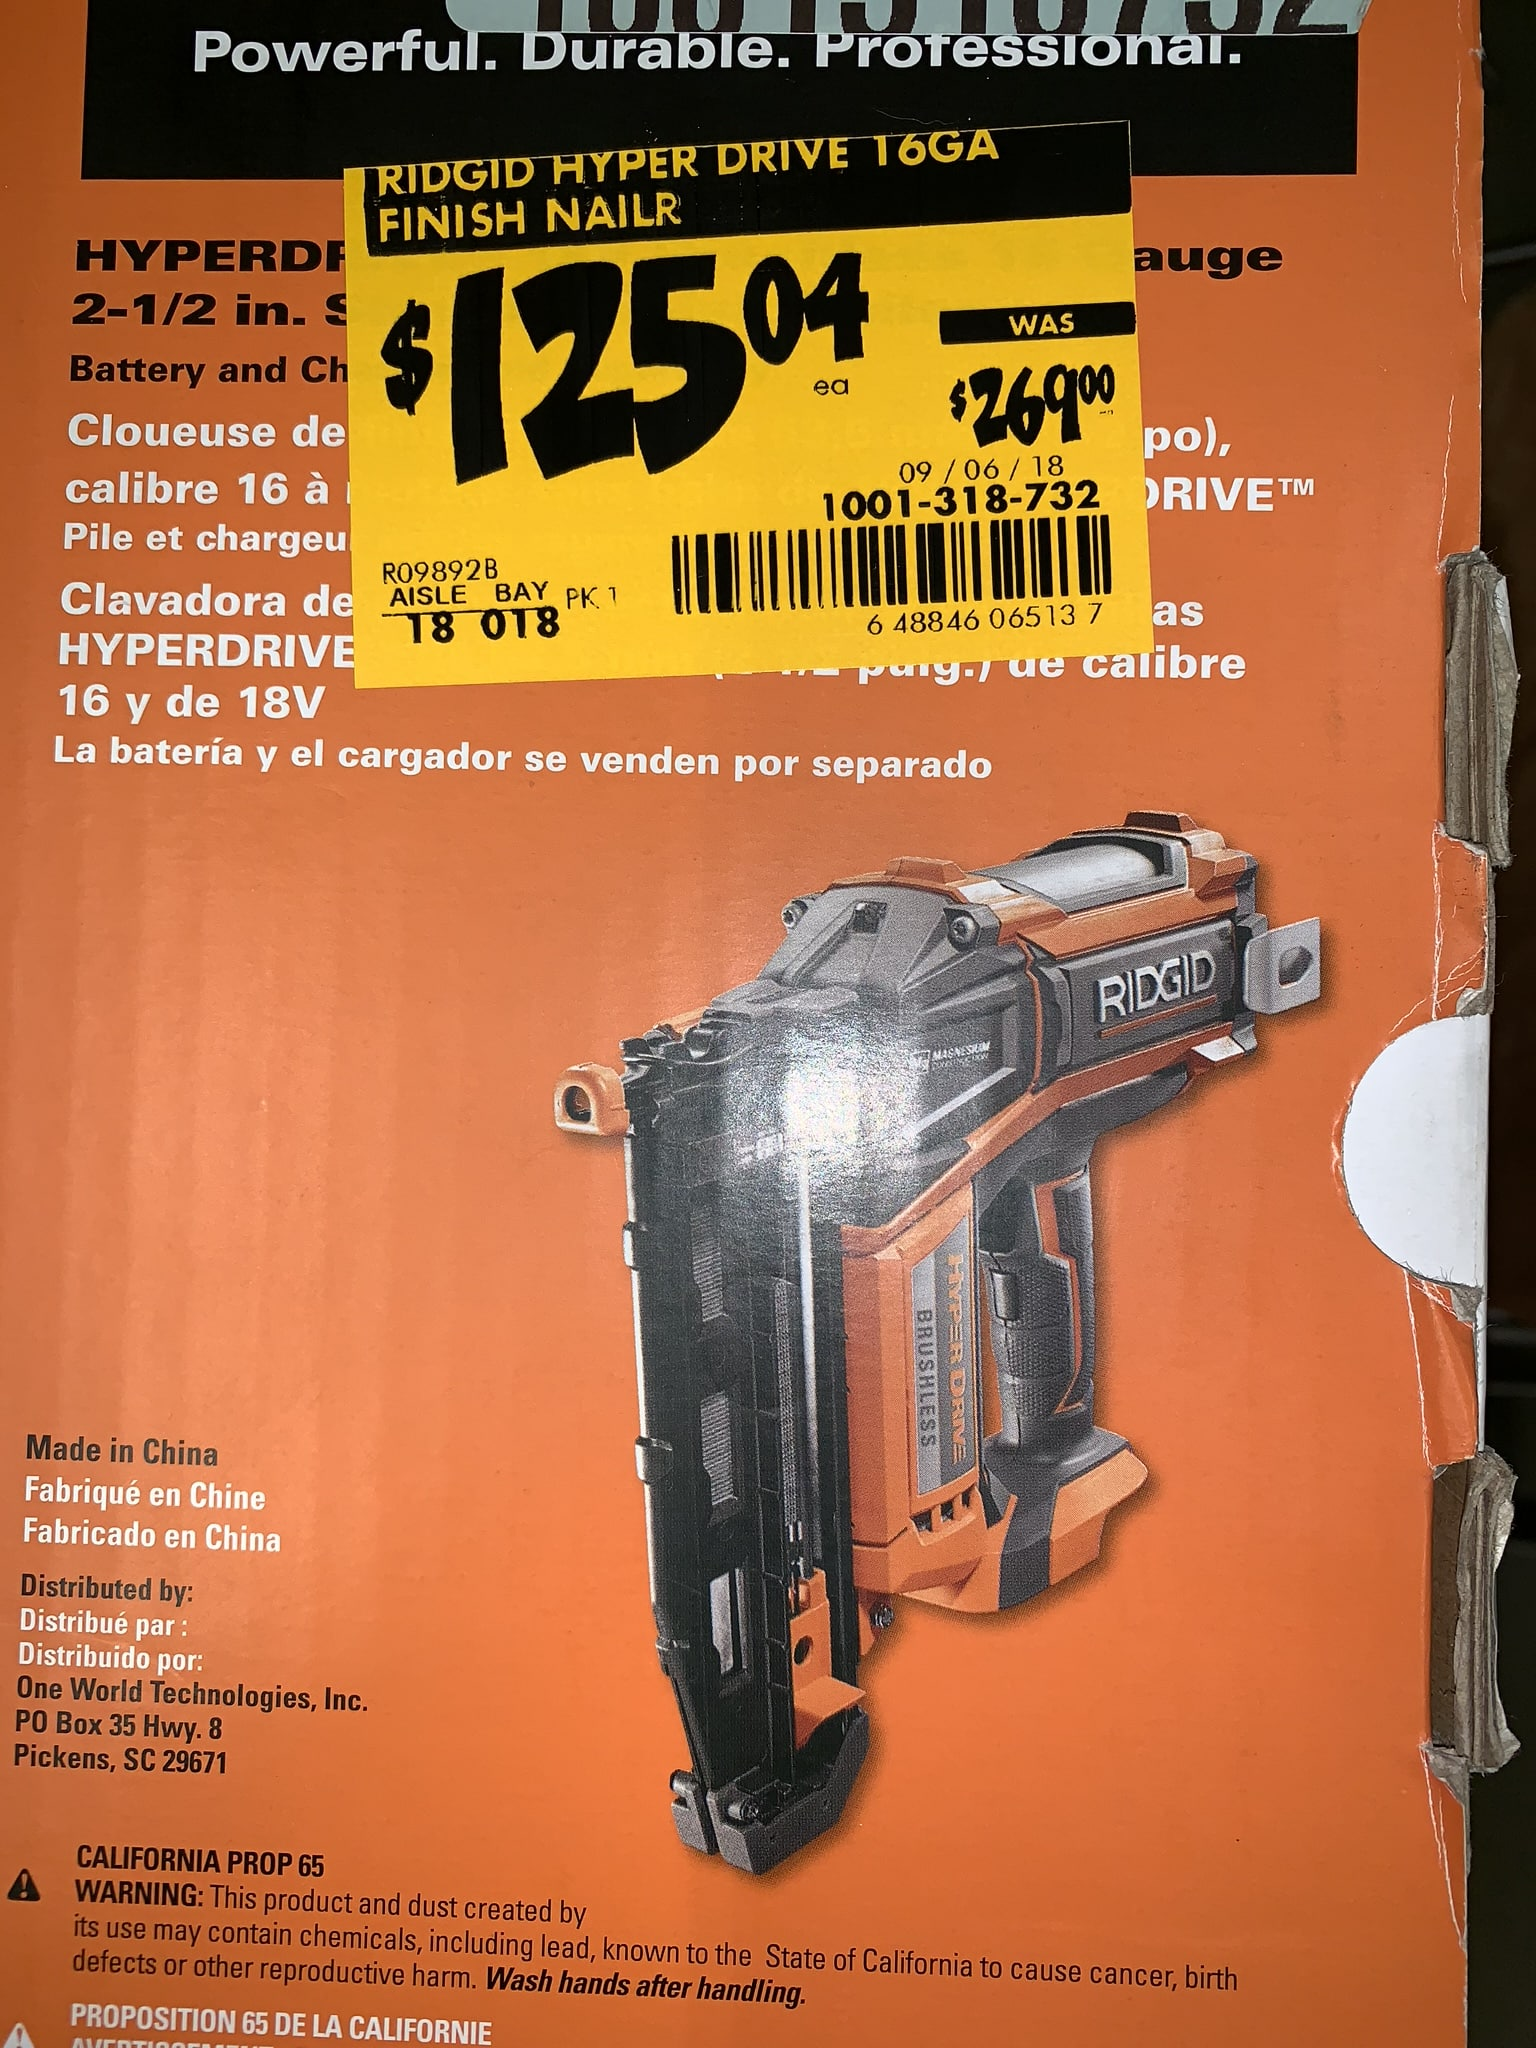 Home Depot YMMV: Ridgid 18V Hyperdrive 16 Gauge Finish Nailer $125.04